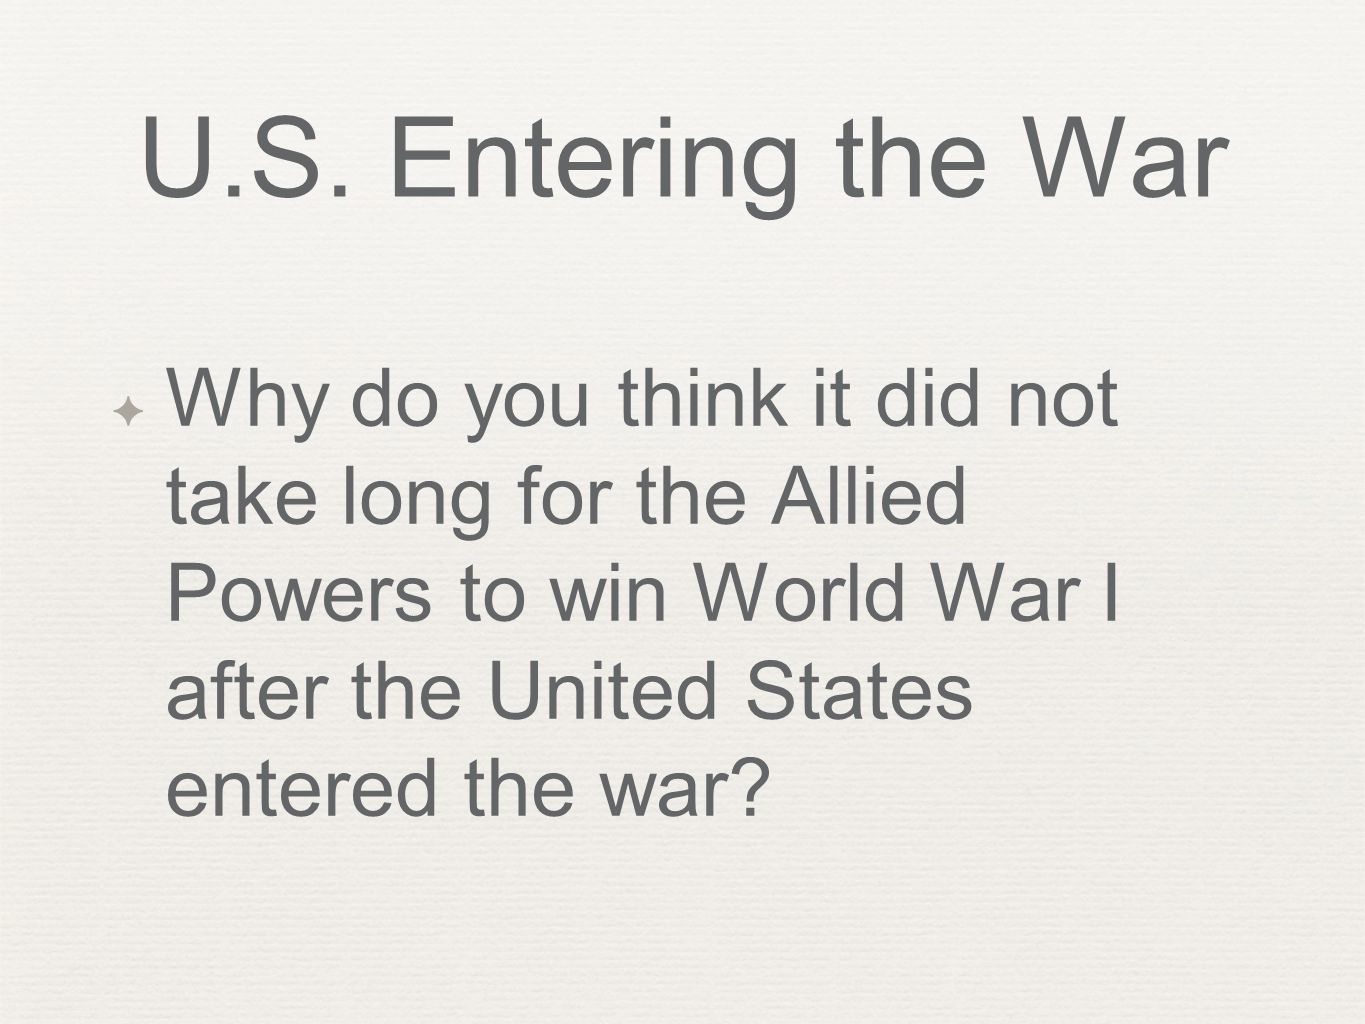 U.S. Entering the War ✦ Why do you think it did not take long for the Allied Powers to win World War I after the United States entered the war?